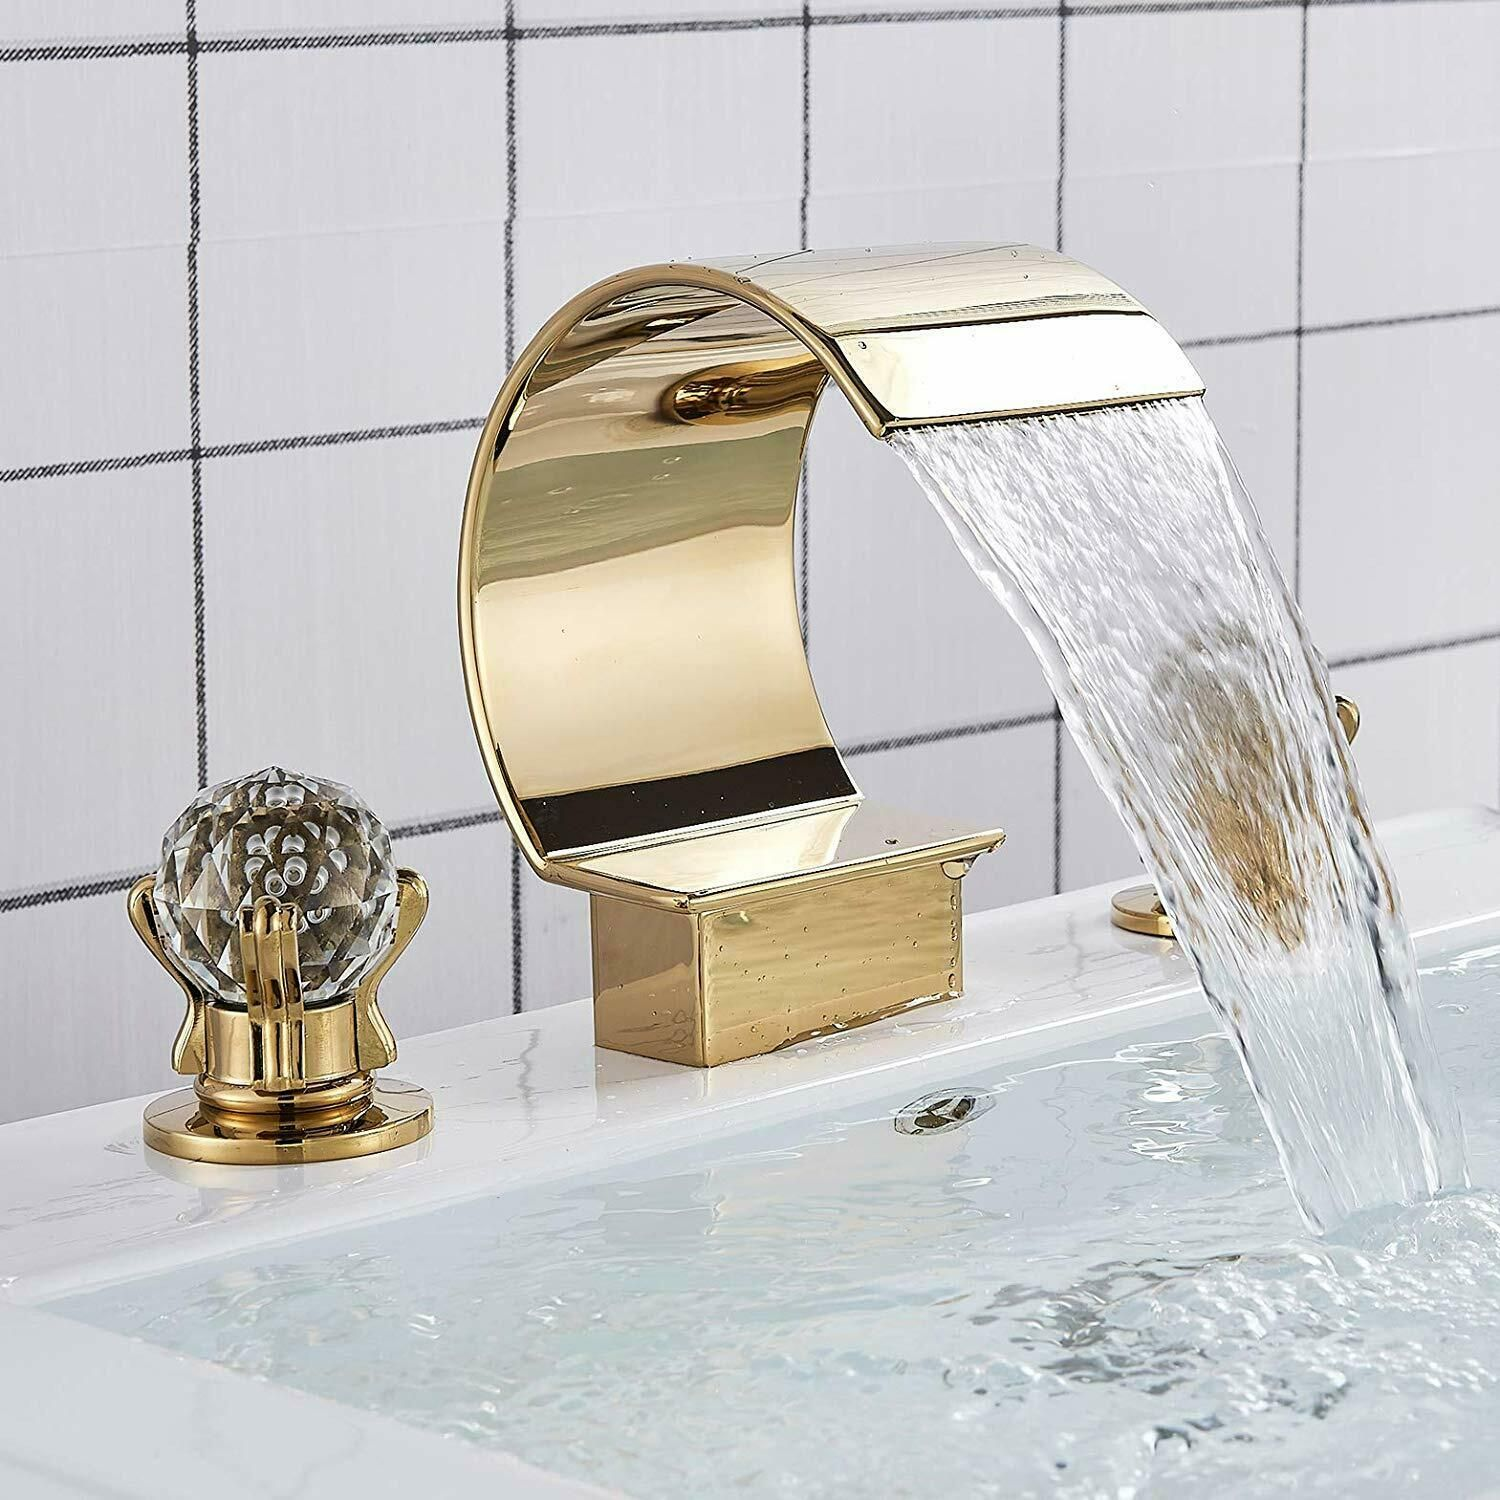 Gold Bathroom Waterfall Spout Basin Faucet 2 Crystal Handle Tub Filler Mixer Tap Bathroom Faucets Ideas Of Tub Filler Faucet Single Handle Bathroom Faucet